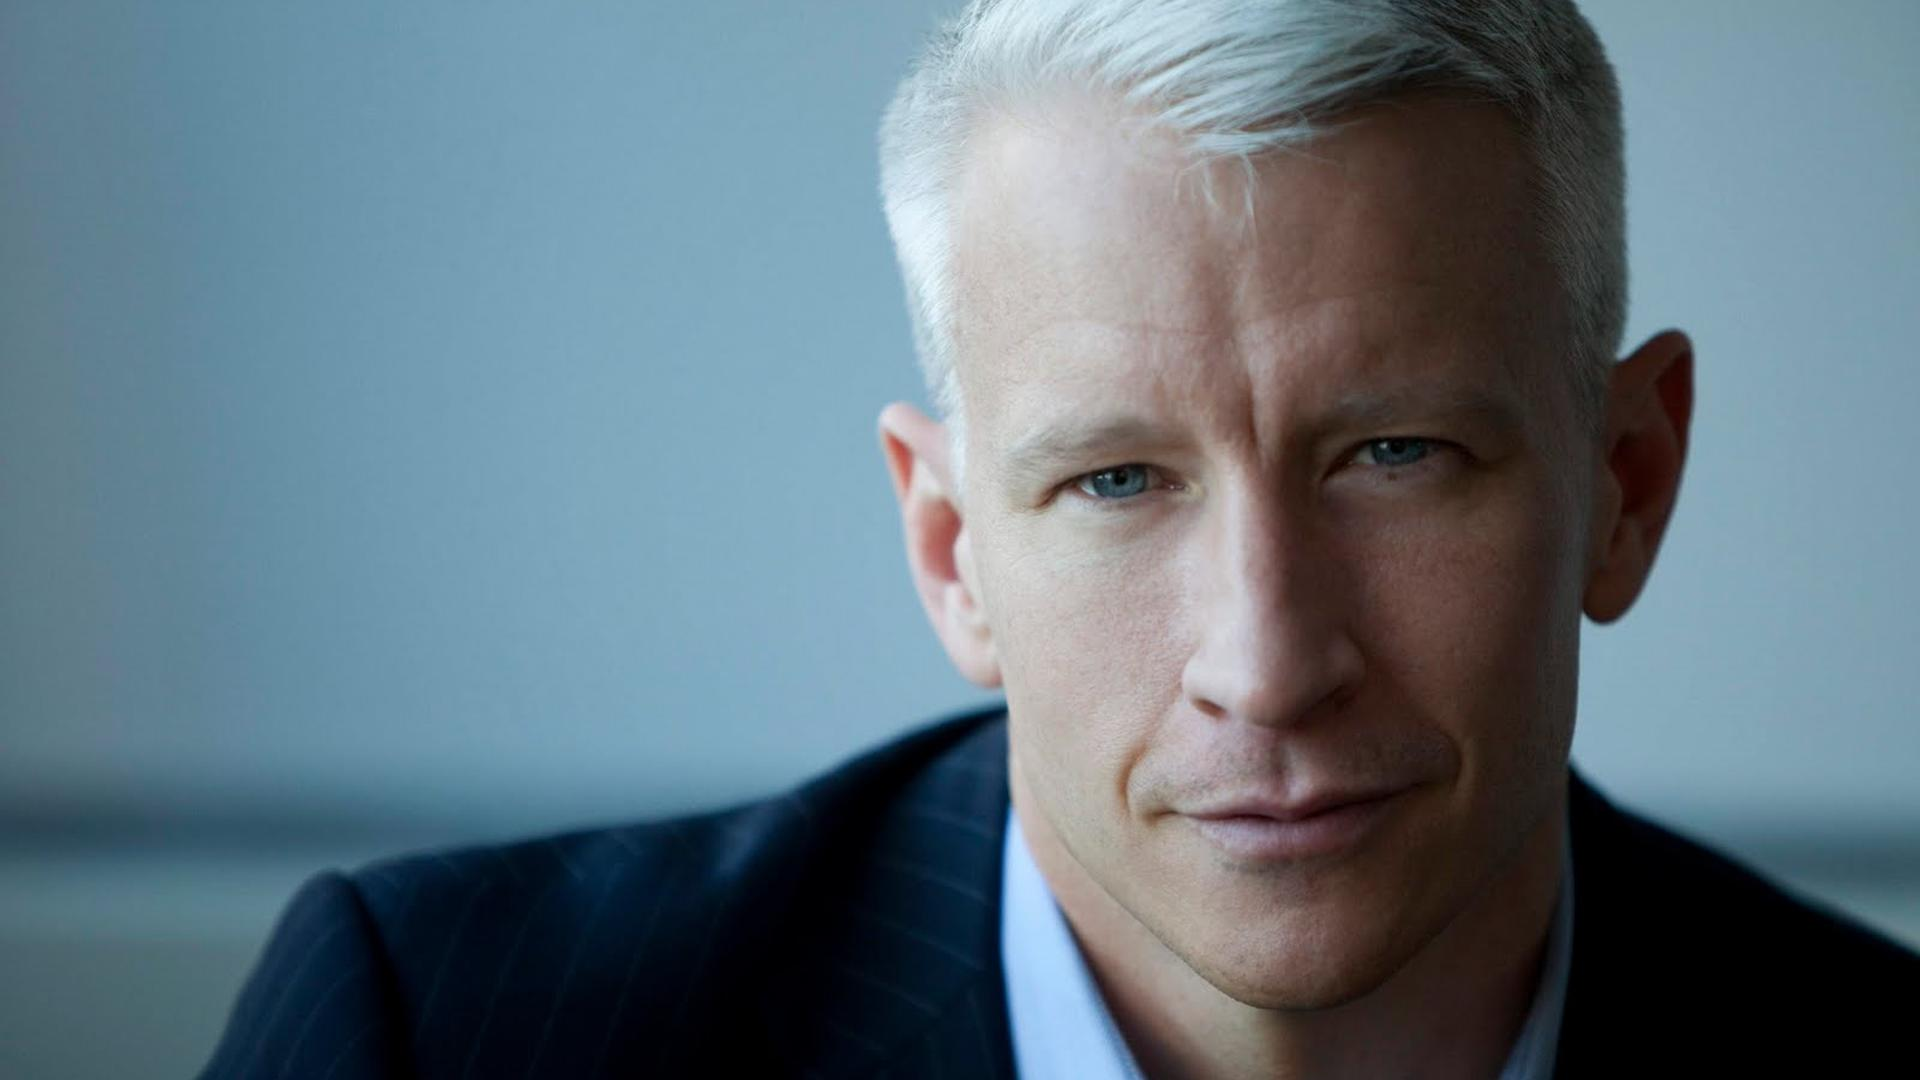 CNN's Anderson Cooper To Reveal New Study On Teens and Social Media